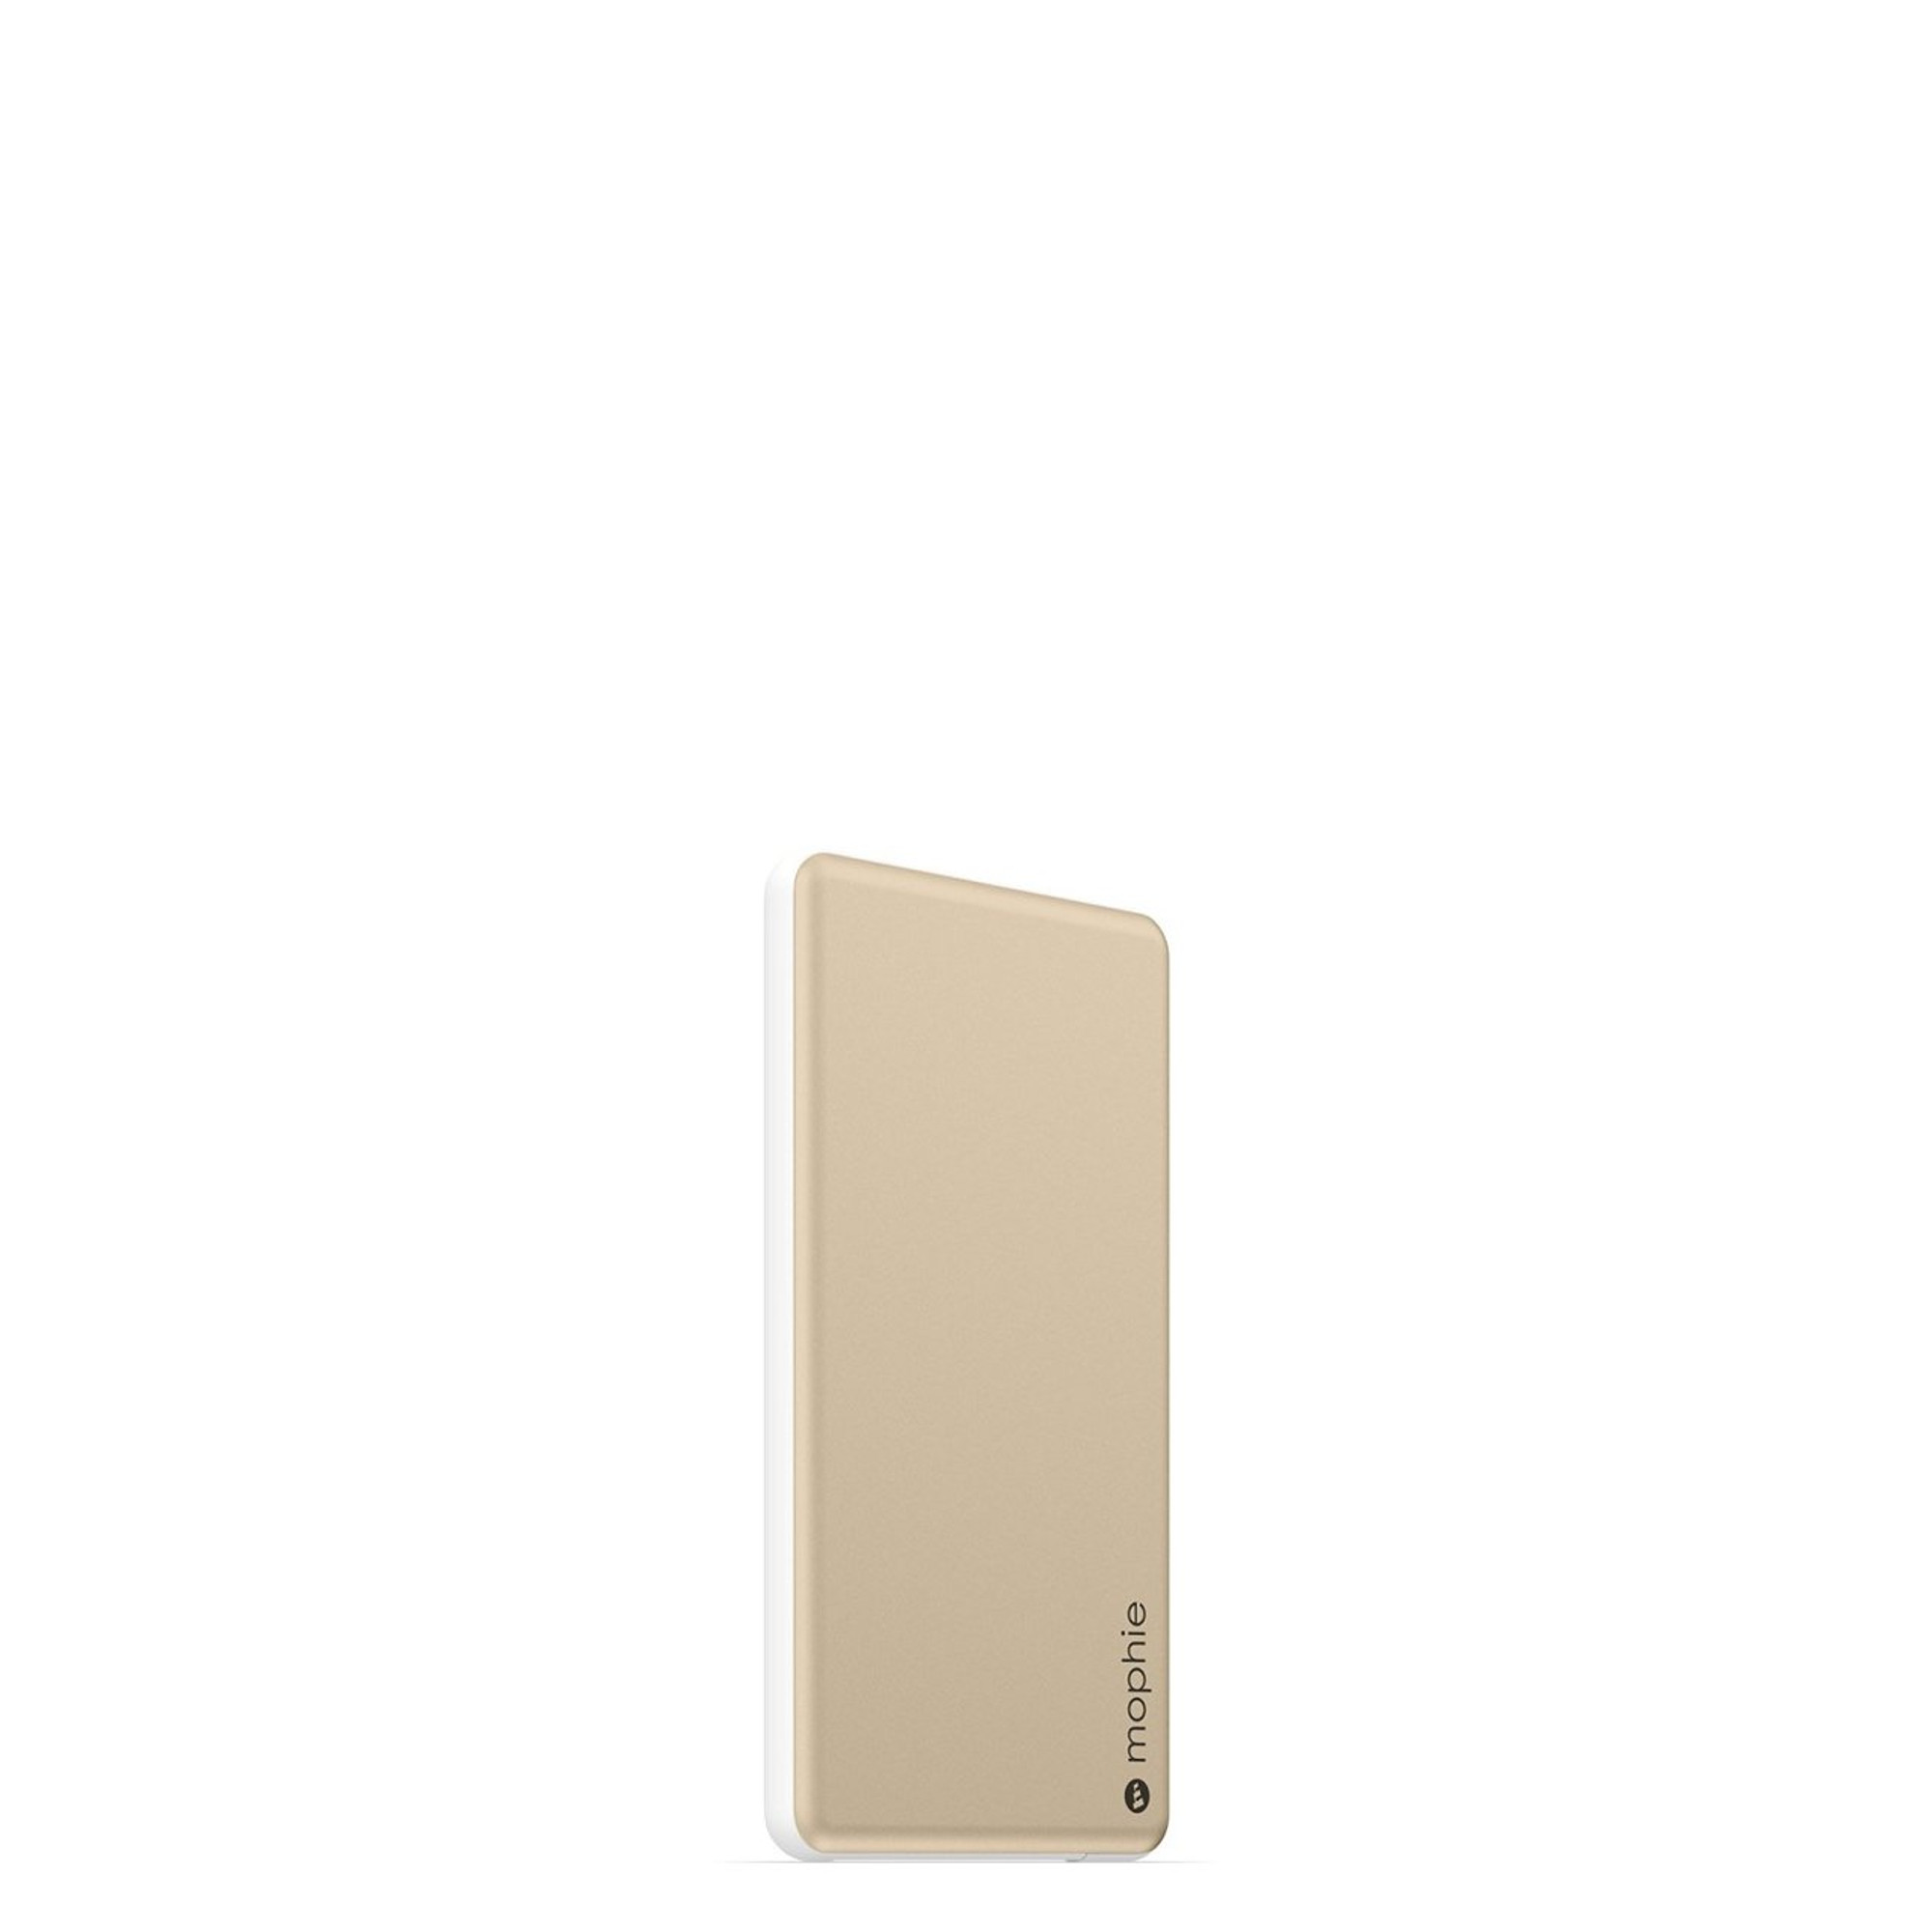 online retailer d703b ccb3f mophie power station plus mini for Smartphones, Tablets and USB Devices -  Gold